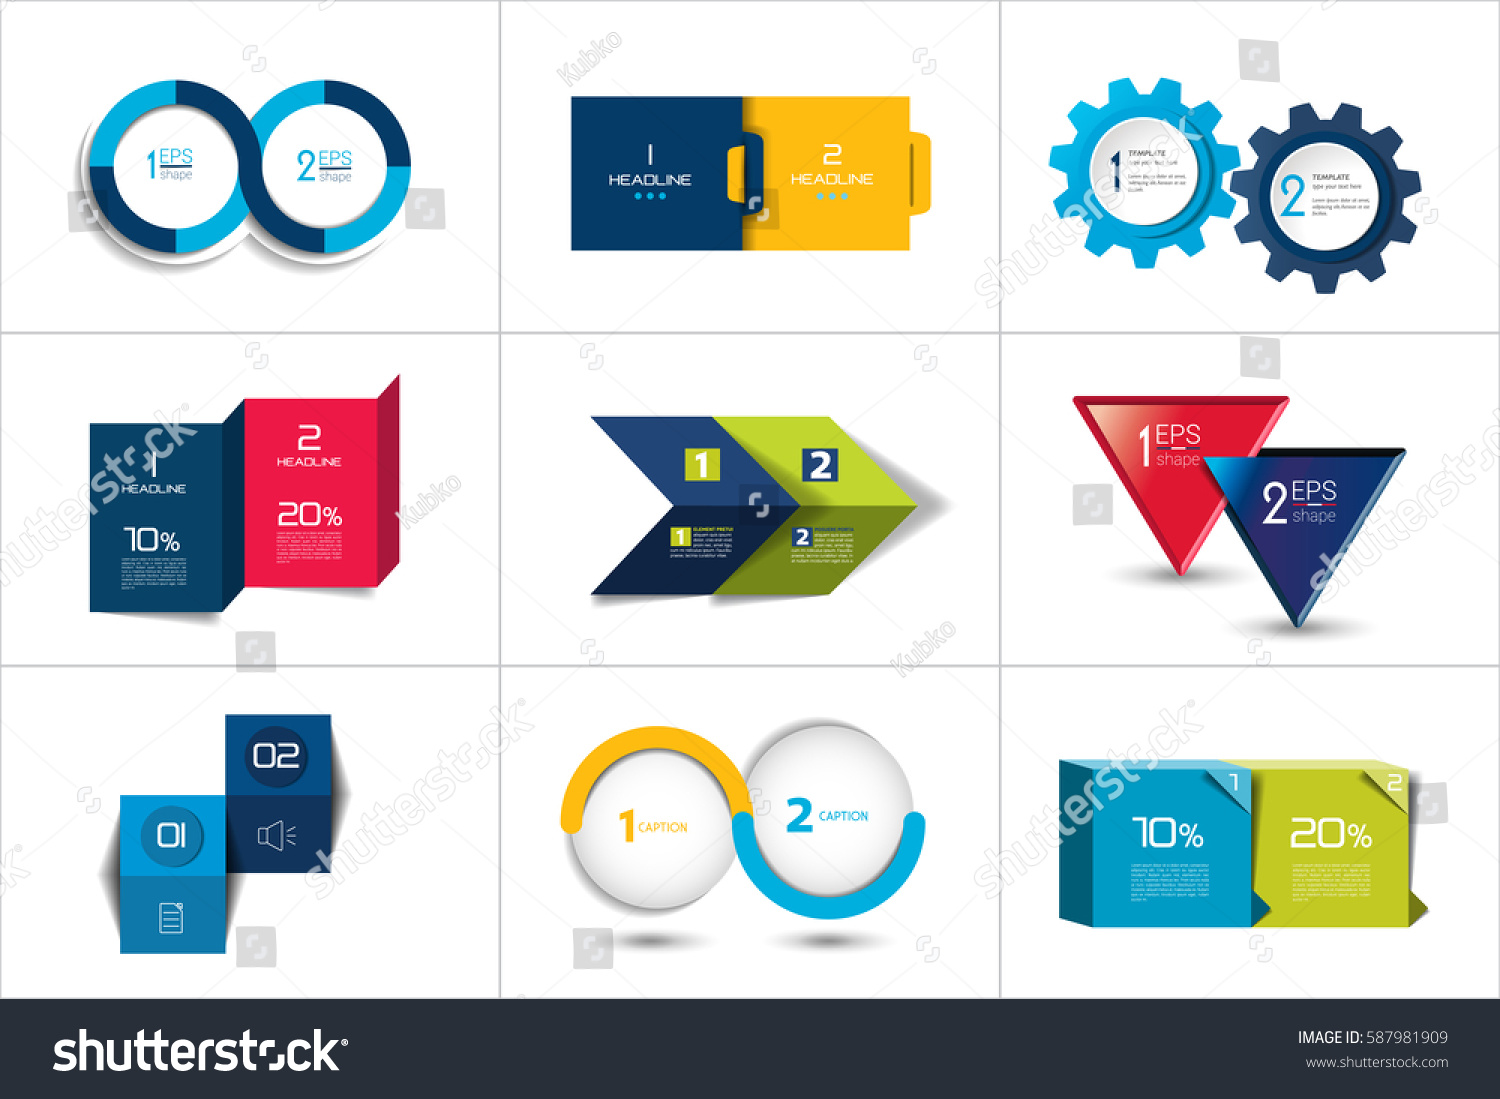 Design elements banner - Two Elements Banner 2 Steps Design Chart Infographic Step By Step Number